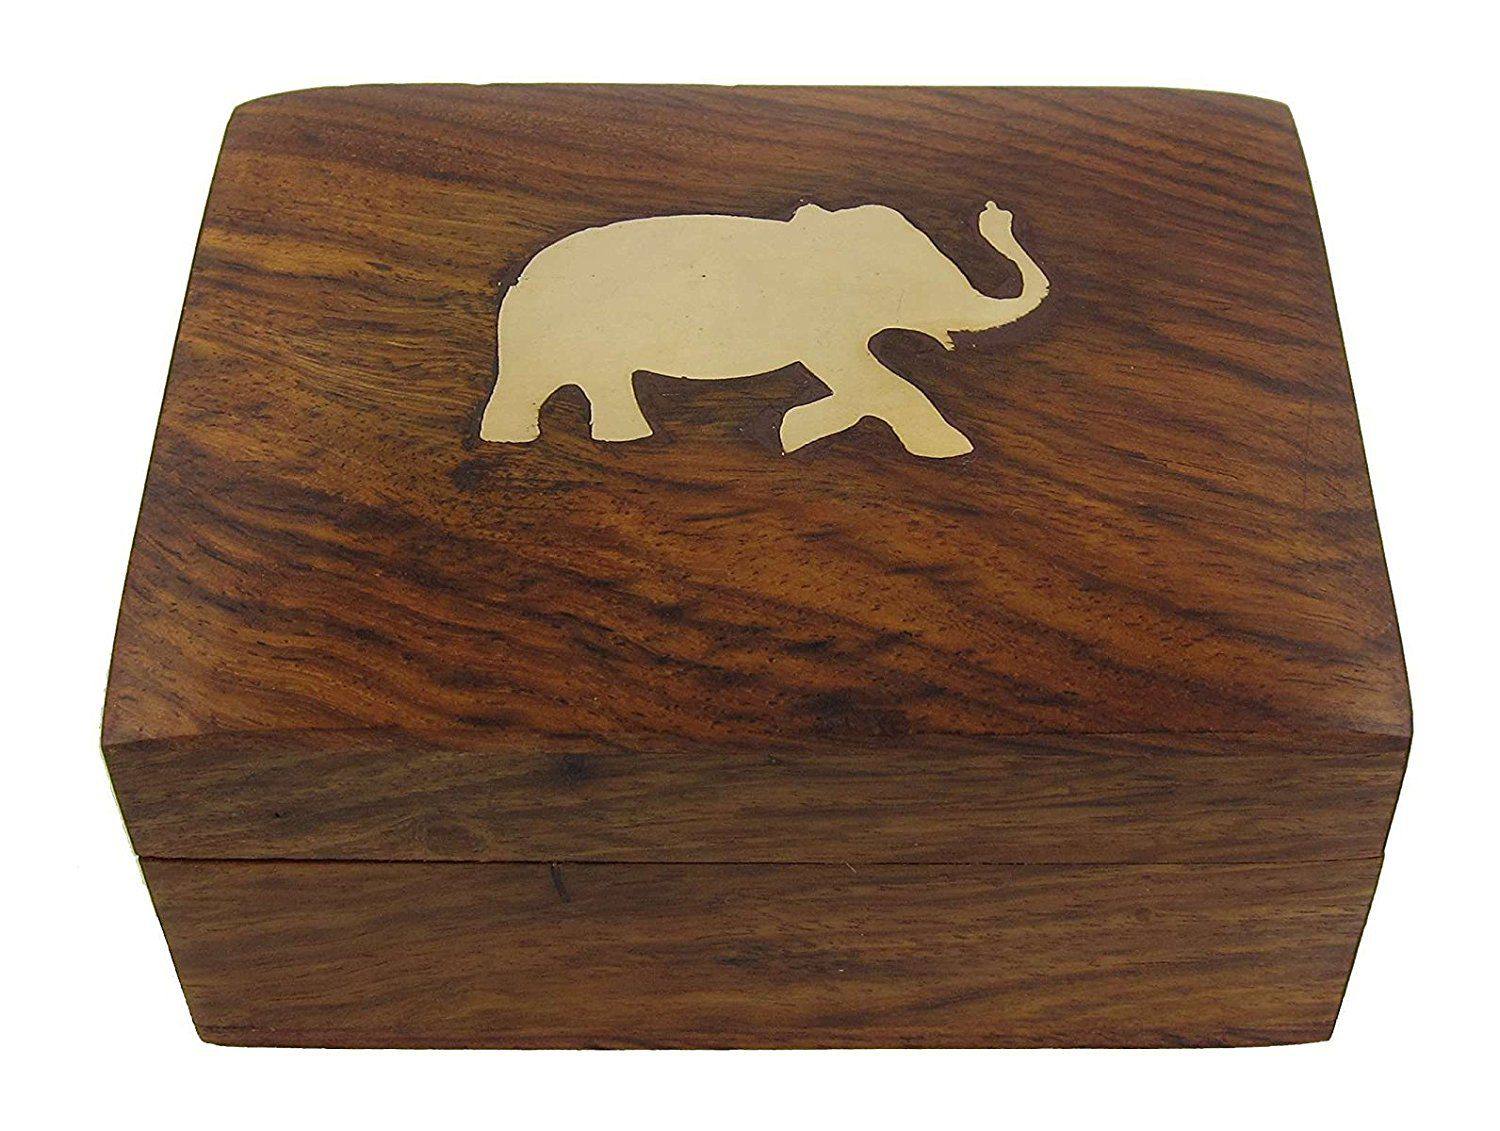 Wooden Handmade Ring, Earring Box for Wedding Gift Item - Small Jewel Organizer - 4 * 3 Inches - Brass Elephant on Top